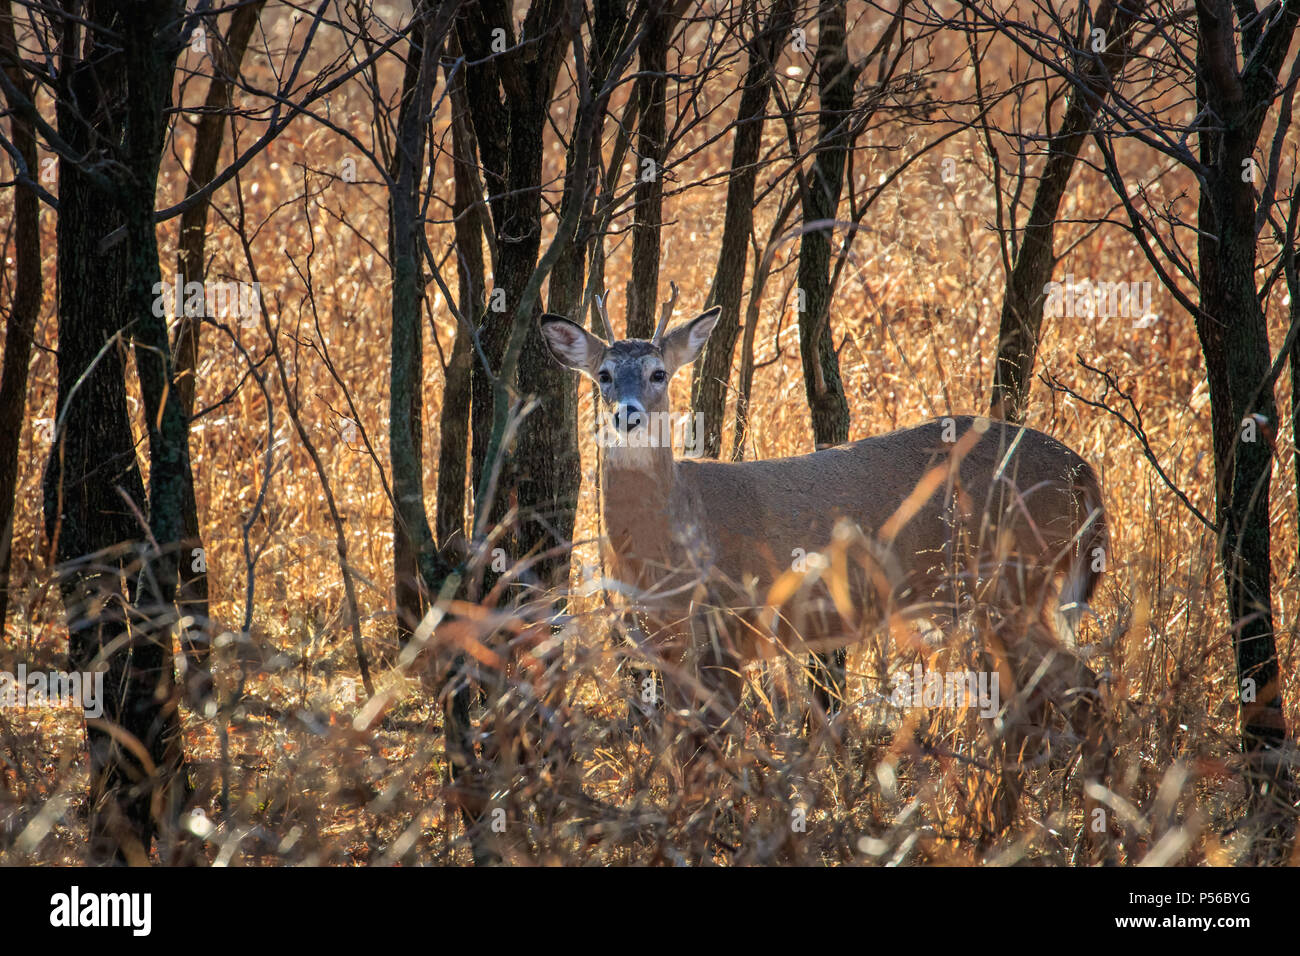 A young White tailed deer (Odocoileus virginianus) buck hiding in a winter forest. - Stock Image